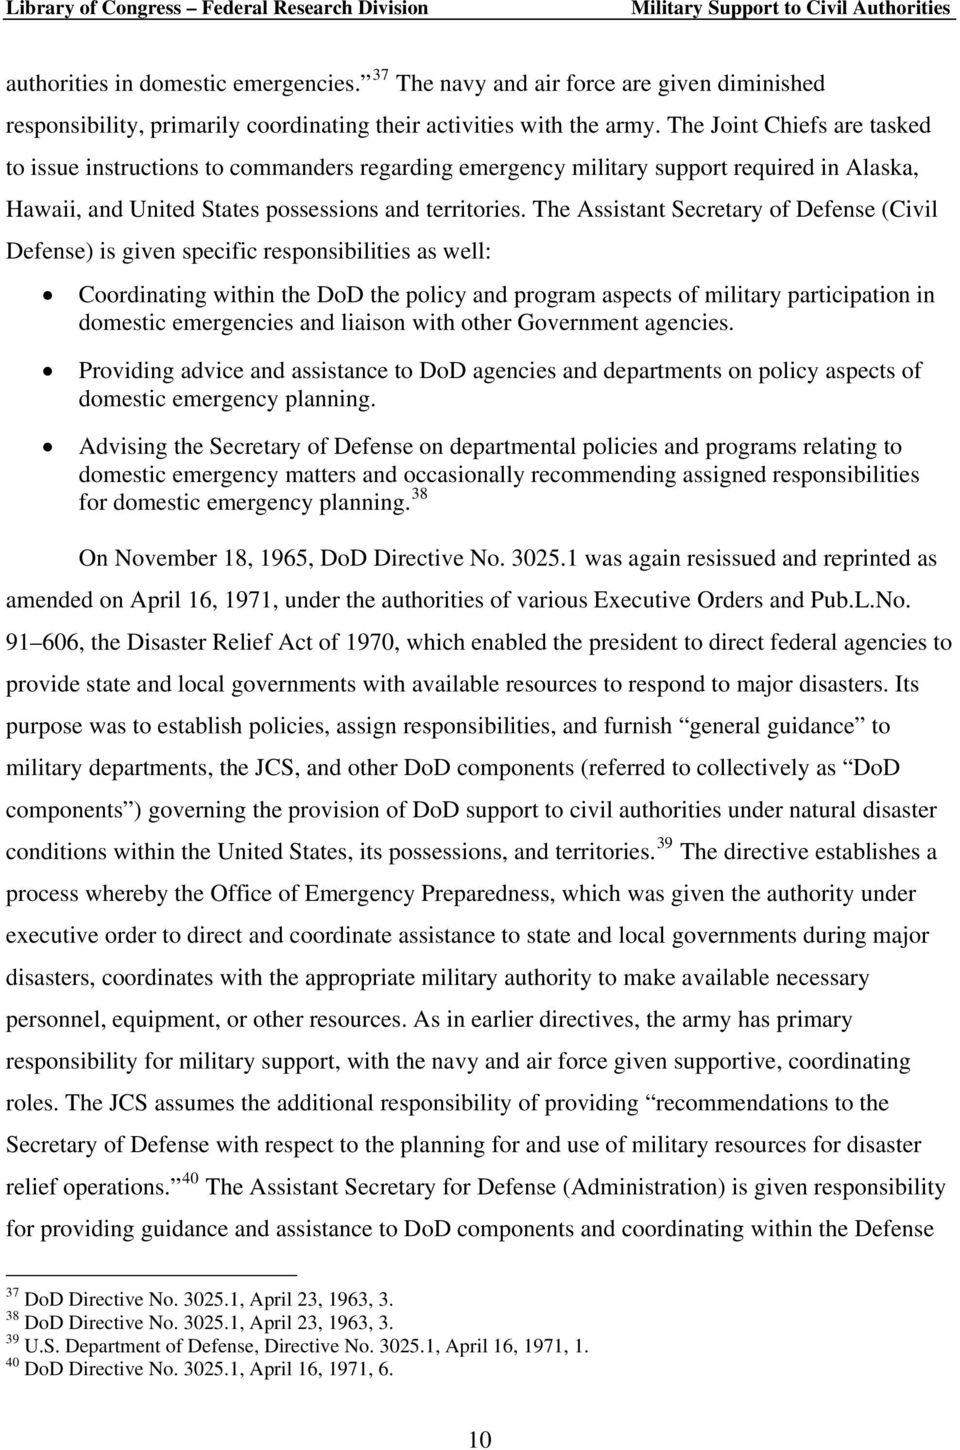 The Assistant Secretary of Defense (Civil Defense) is given specific responsibilities as well: Coordinating within the DoD the policy and program aspects of military participation in domestic